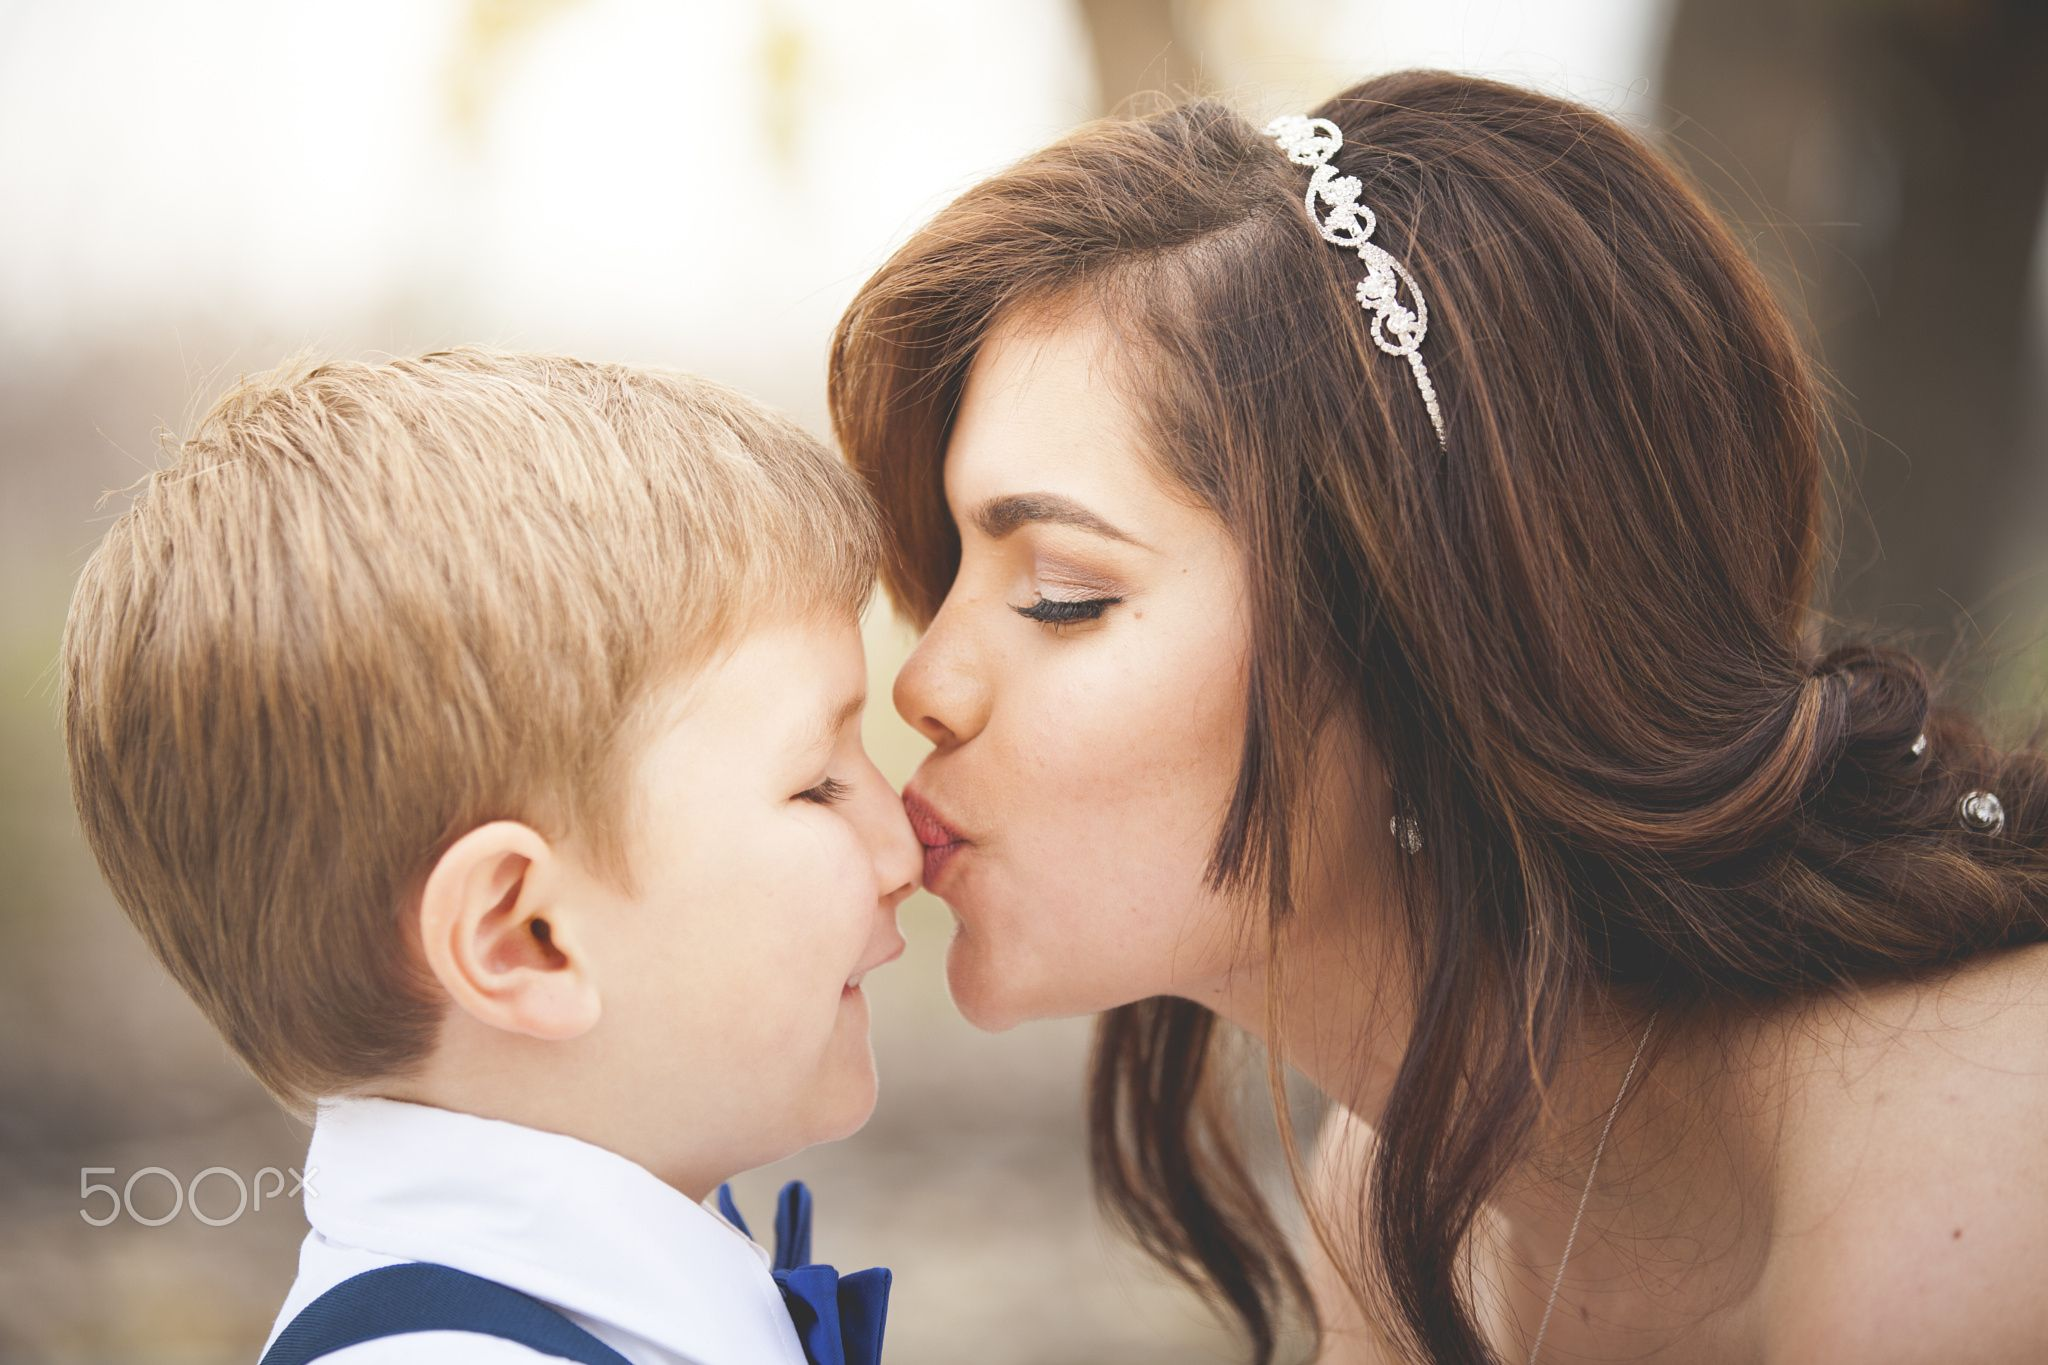 Kiss On The Nose A Young Bride Giving A Kiss On The Nose To A